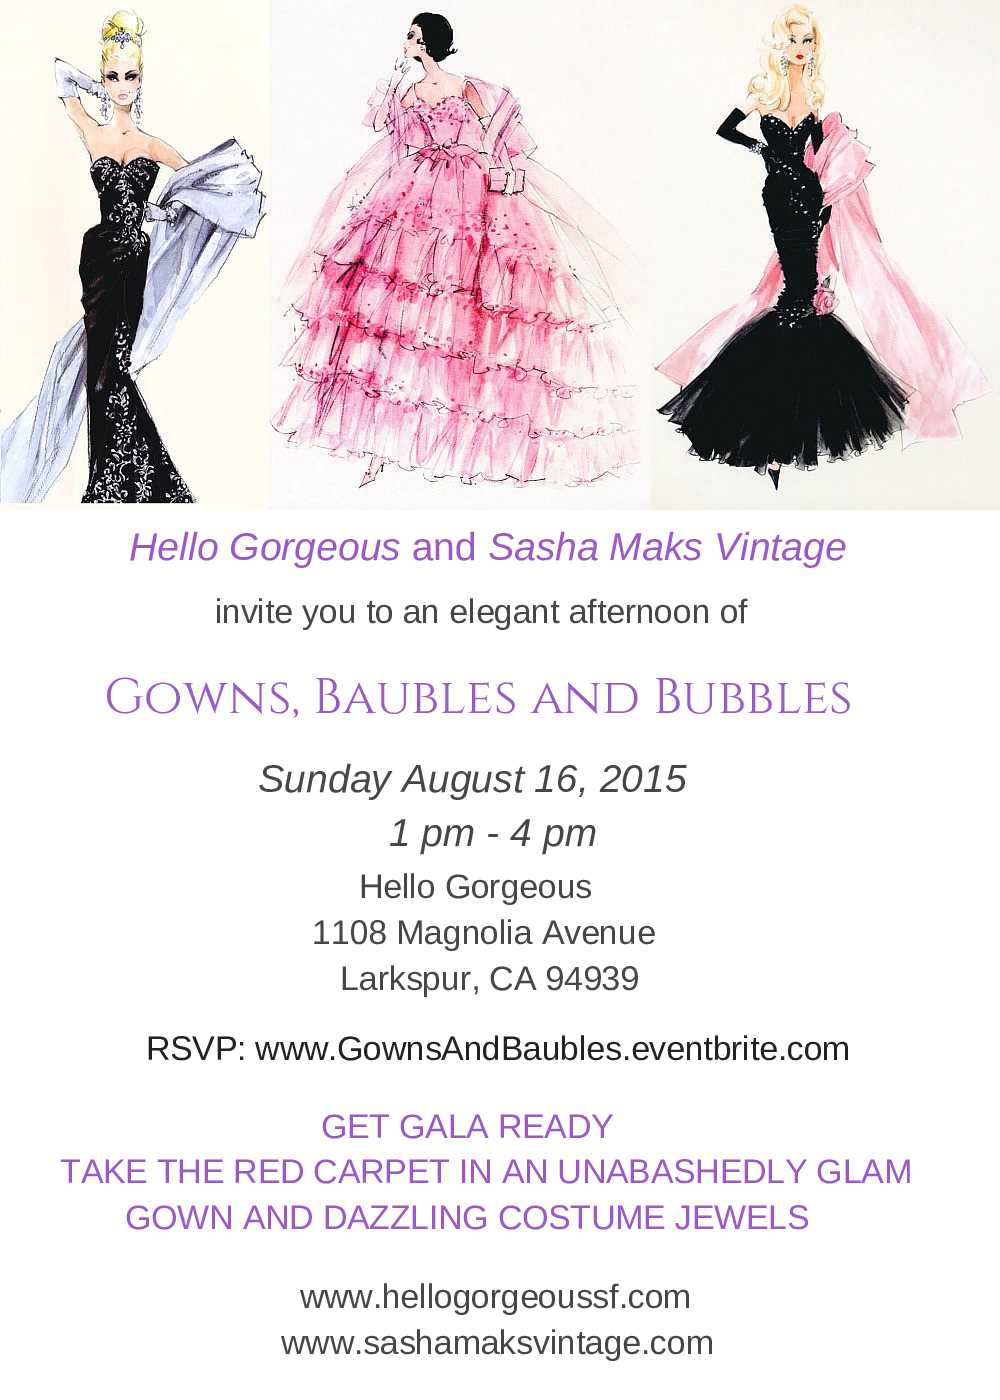 Gowns, Baubles and Bubbly Trunk Show